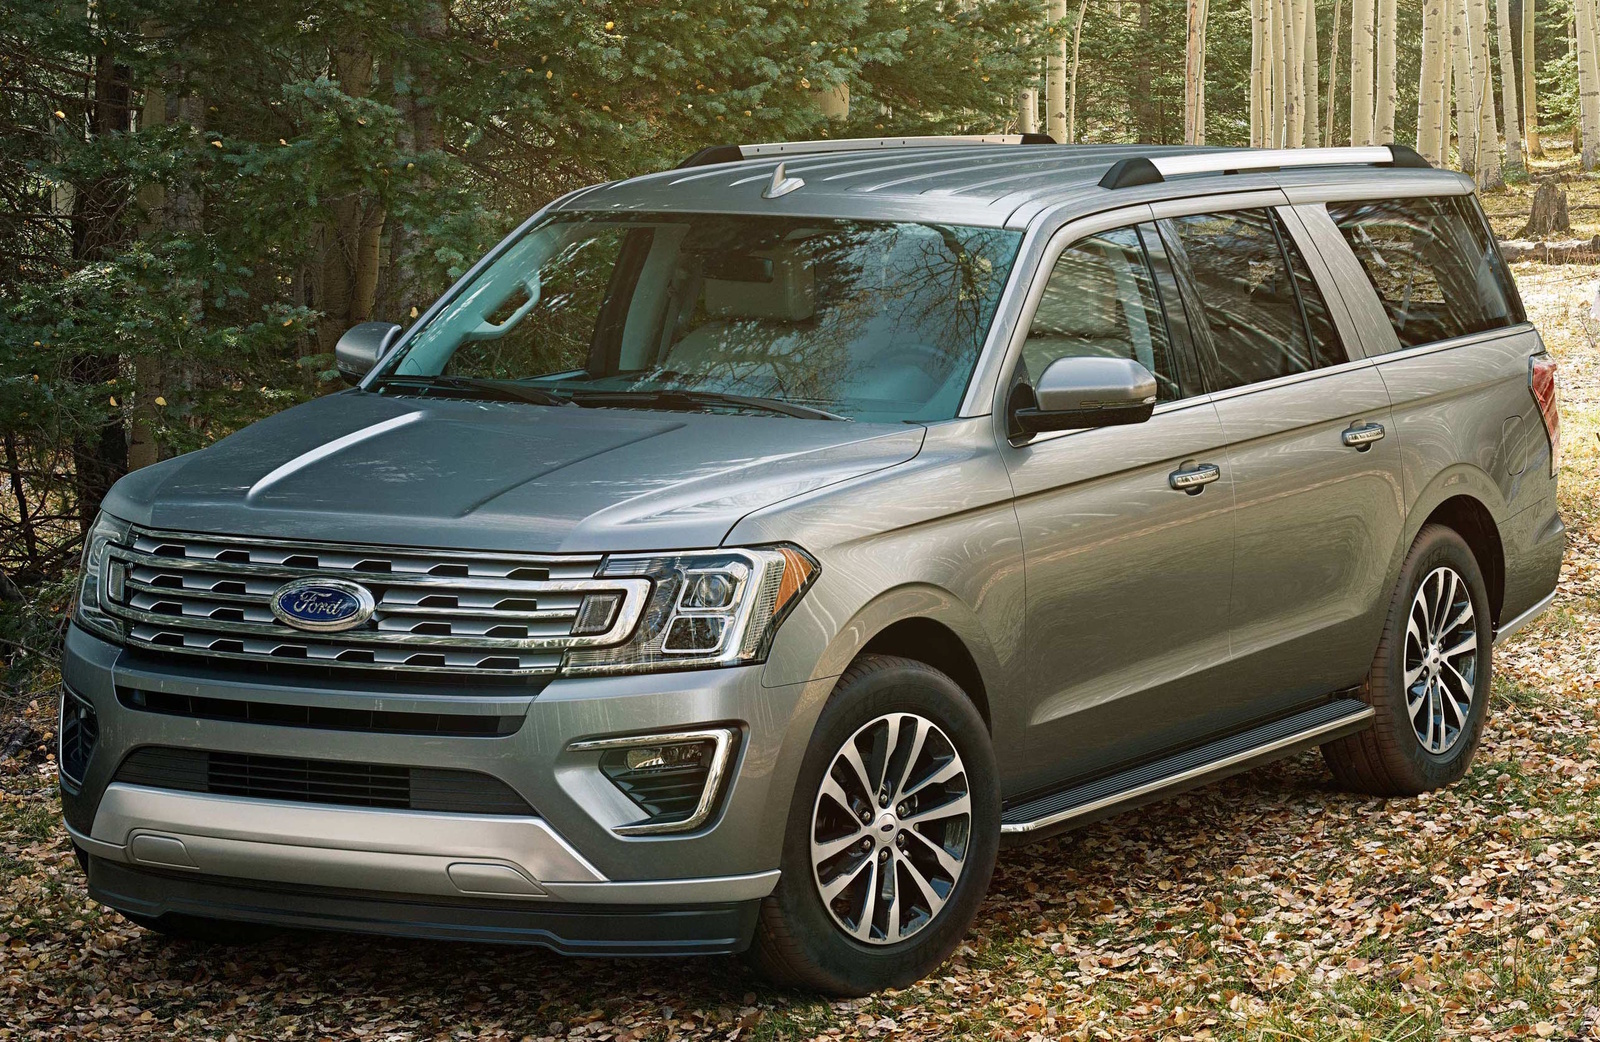 2018 ford expedition max platinum new car release date and review 2018 amanda felicia. Black Bedroom Furniture Sets. Home Design Ideas